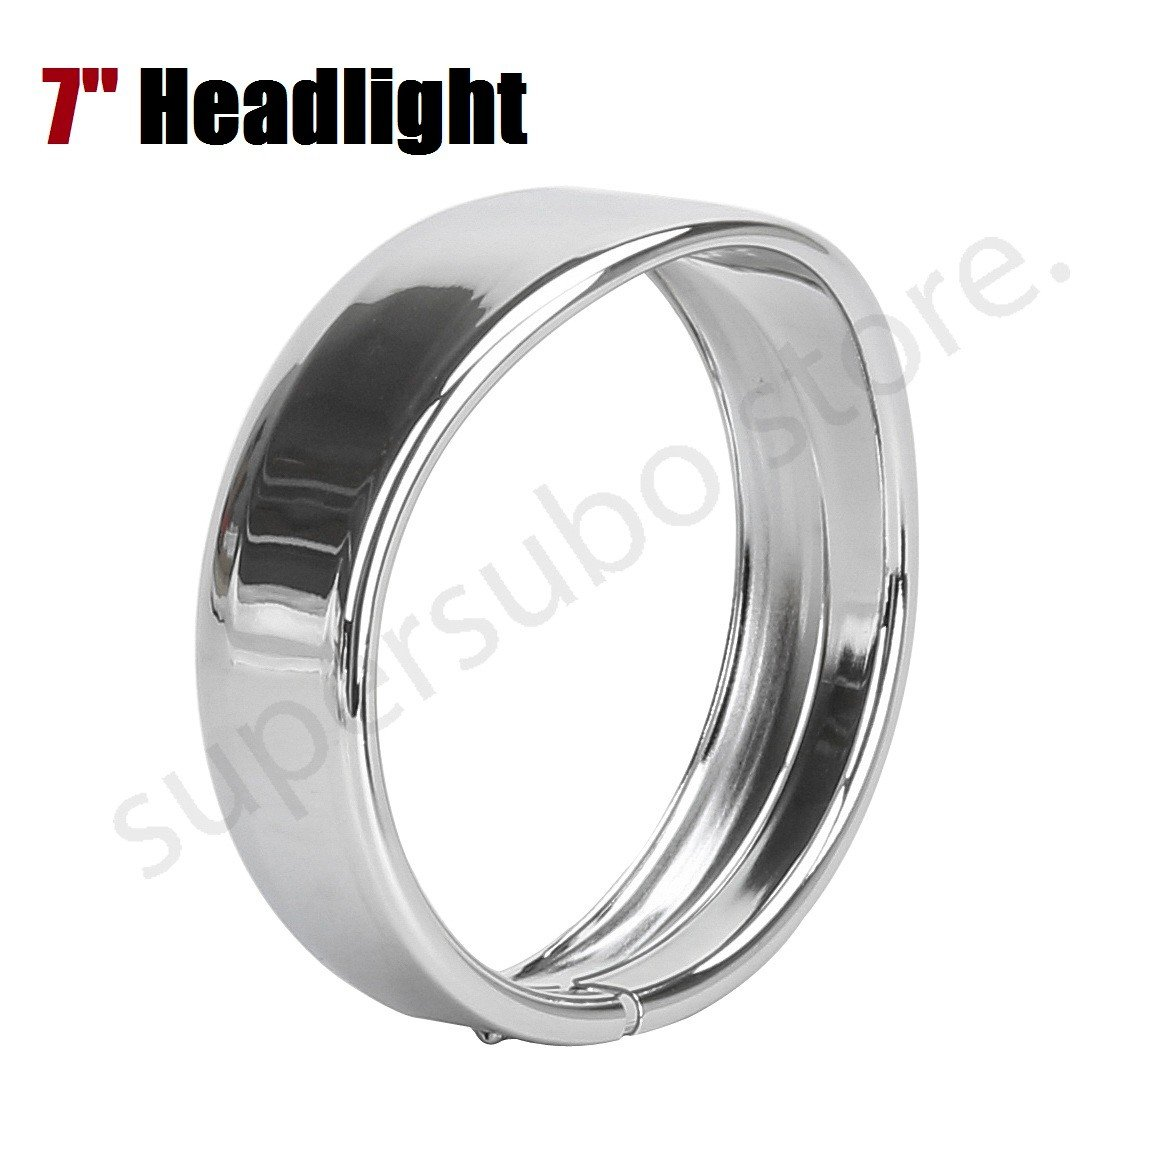 "Black 7"" Headlight Trim Ring visor For Harley Touring 83-13, 12-14 FLD headlight cover, 94-14 FLHR, 86-14-FLST Models"